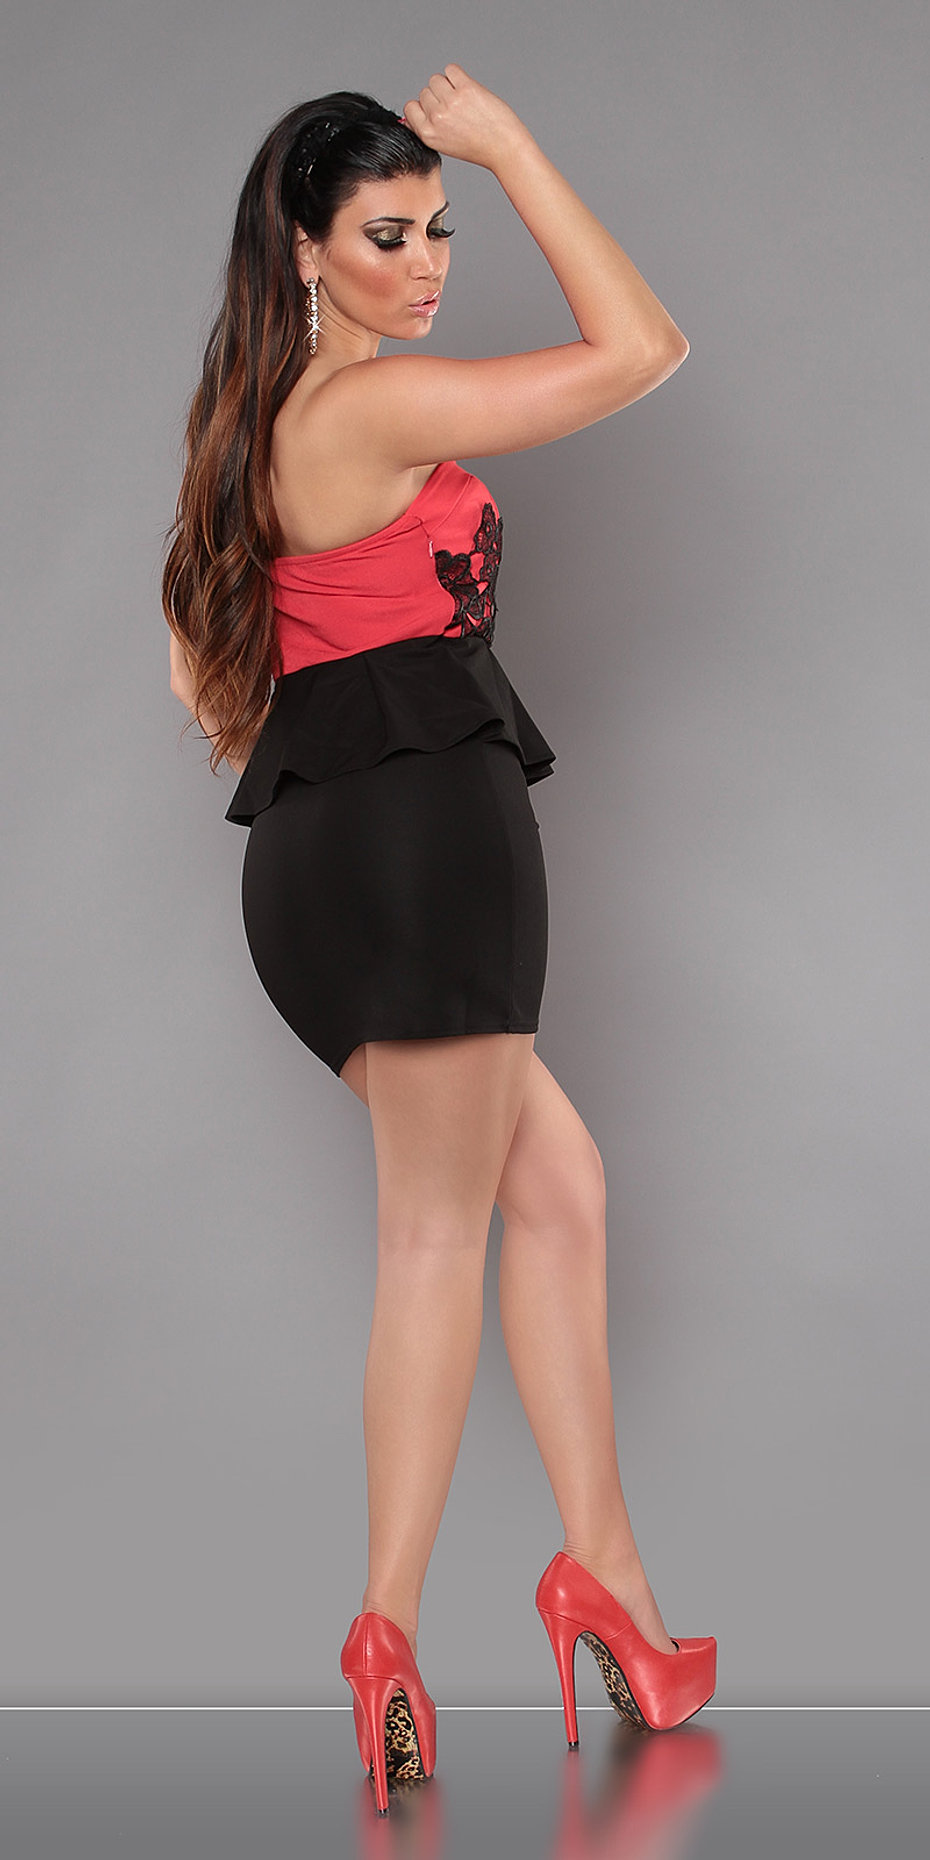 aaParty-Minidress_with_peplum__Color_RED_Size_M_0000K6026_ROT_2_1.jpg